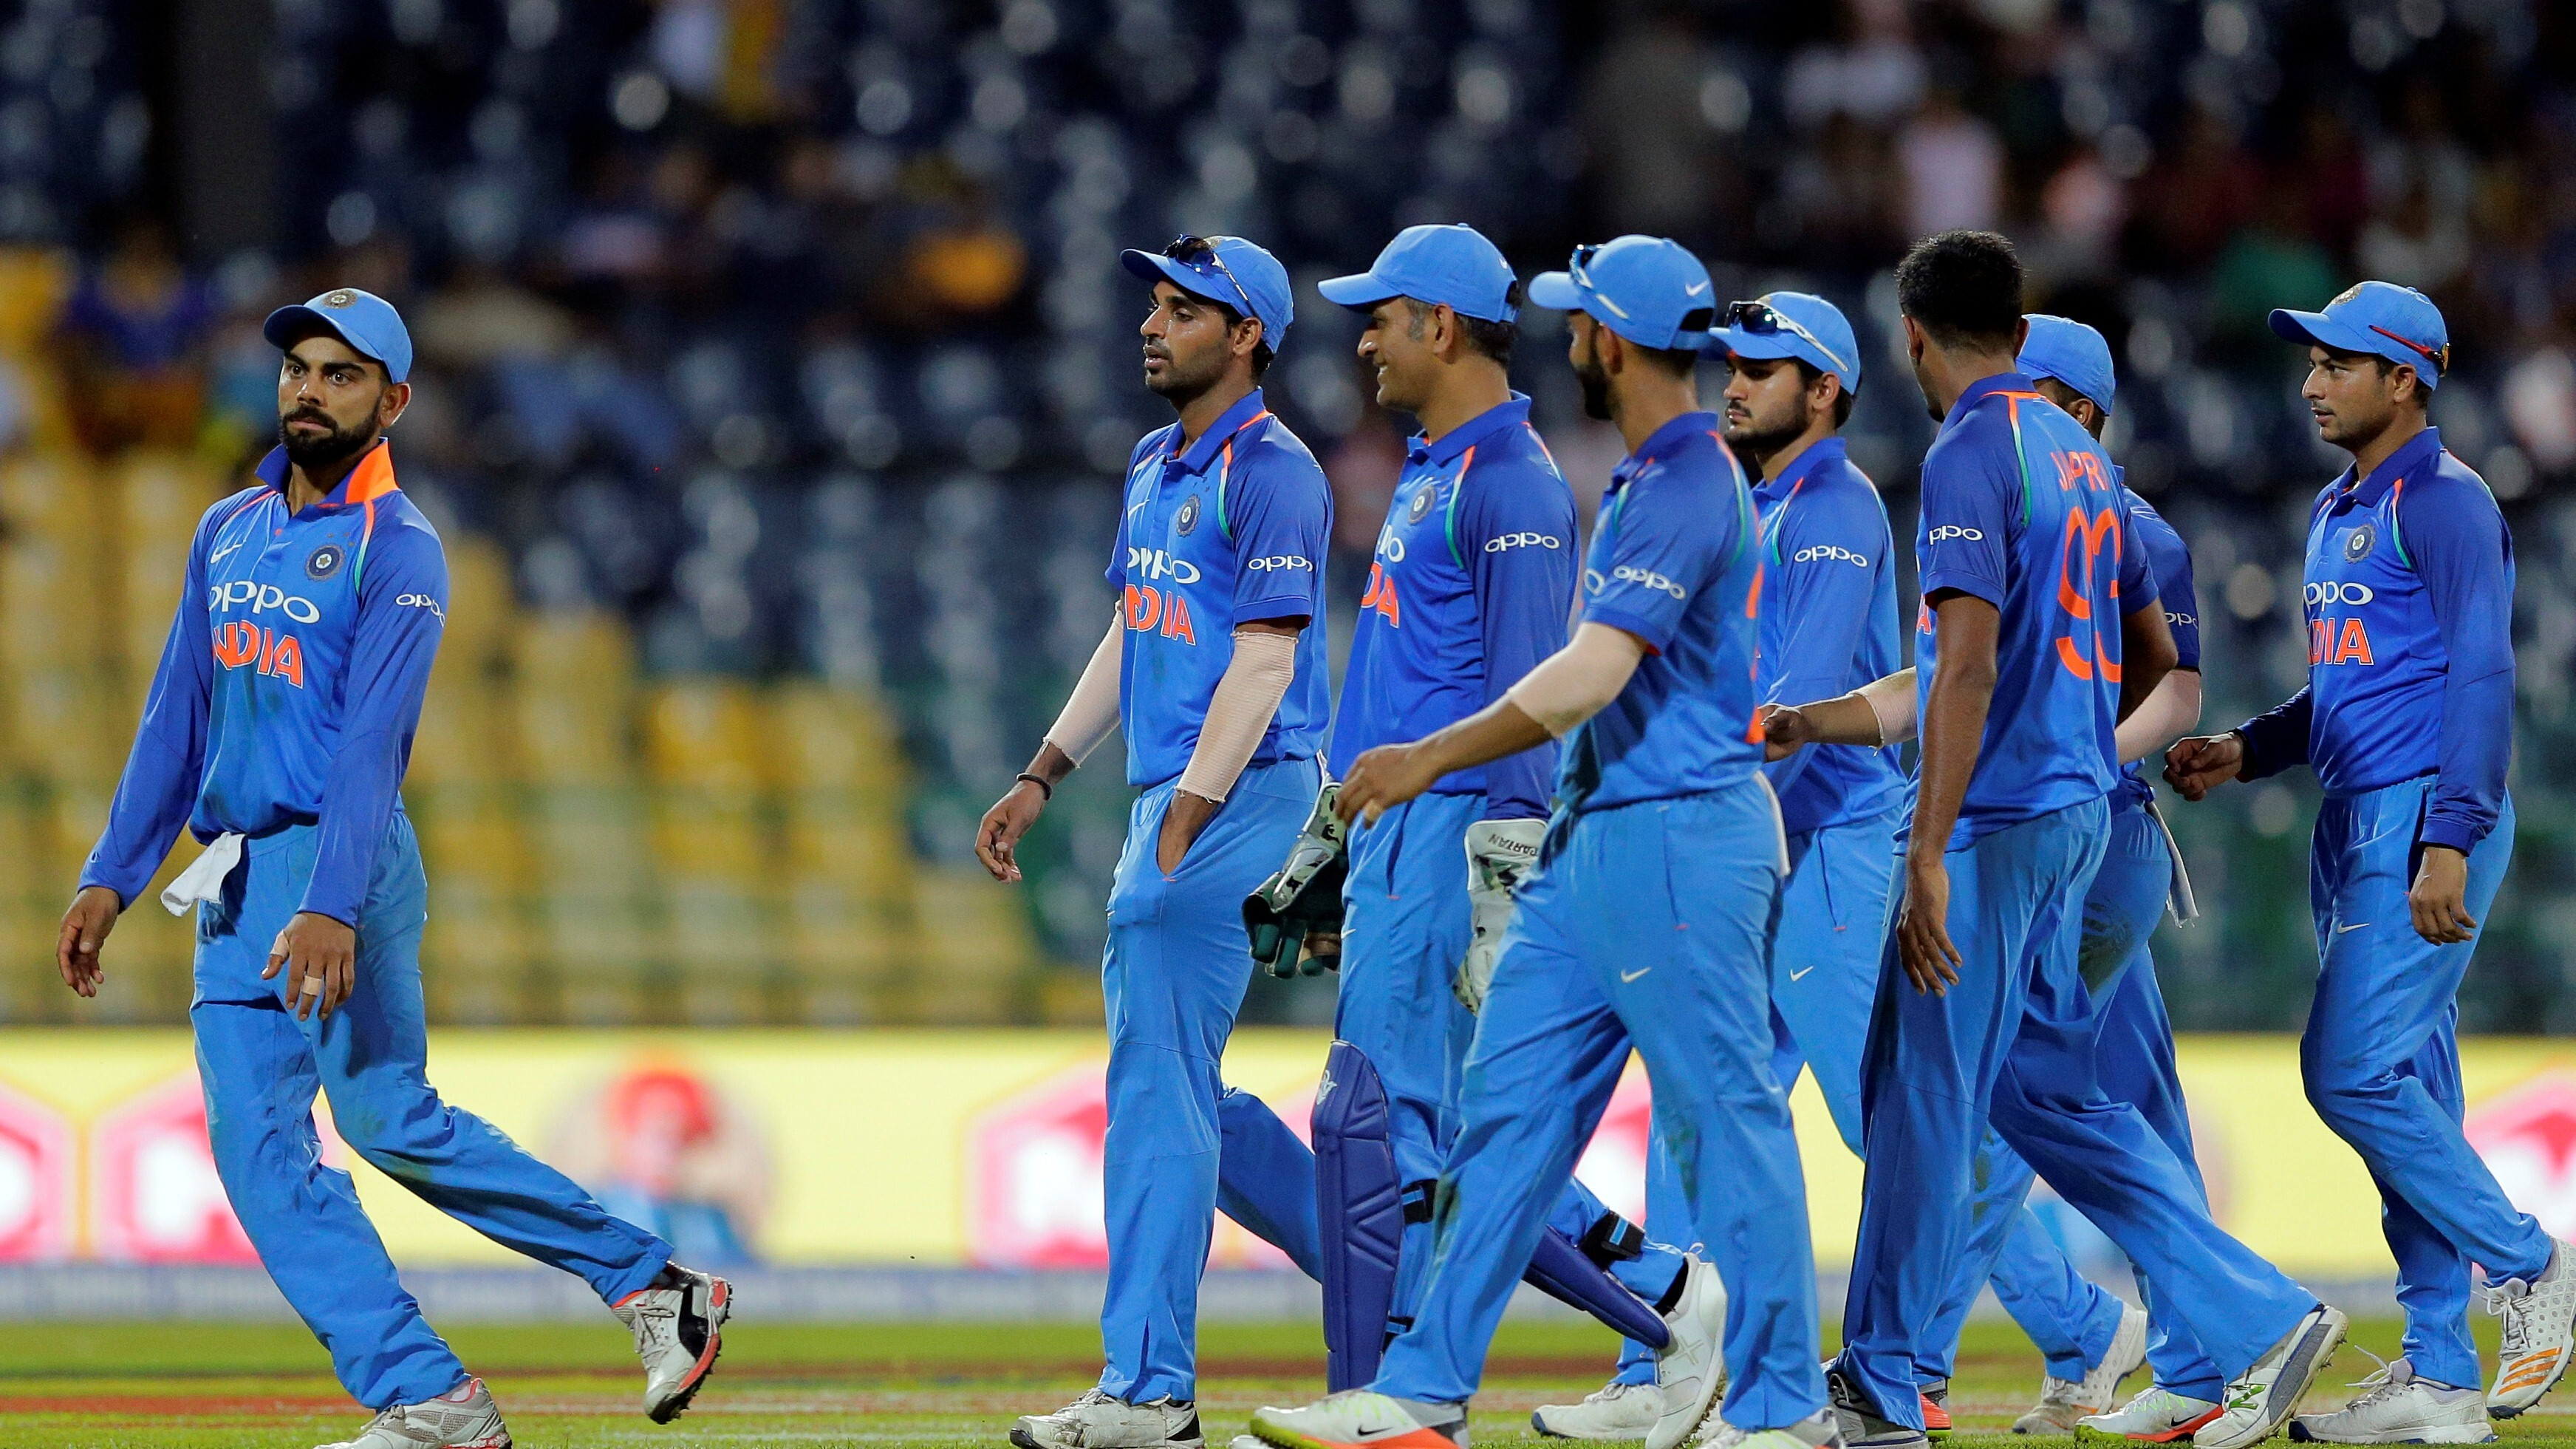 Indian Cricket Hd Wallpapers: Indian Cricket Team During Field Photo